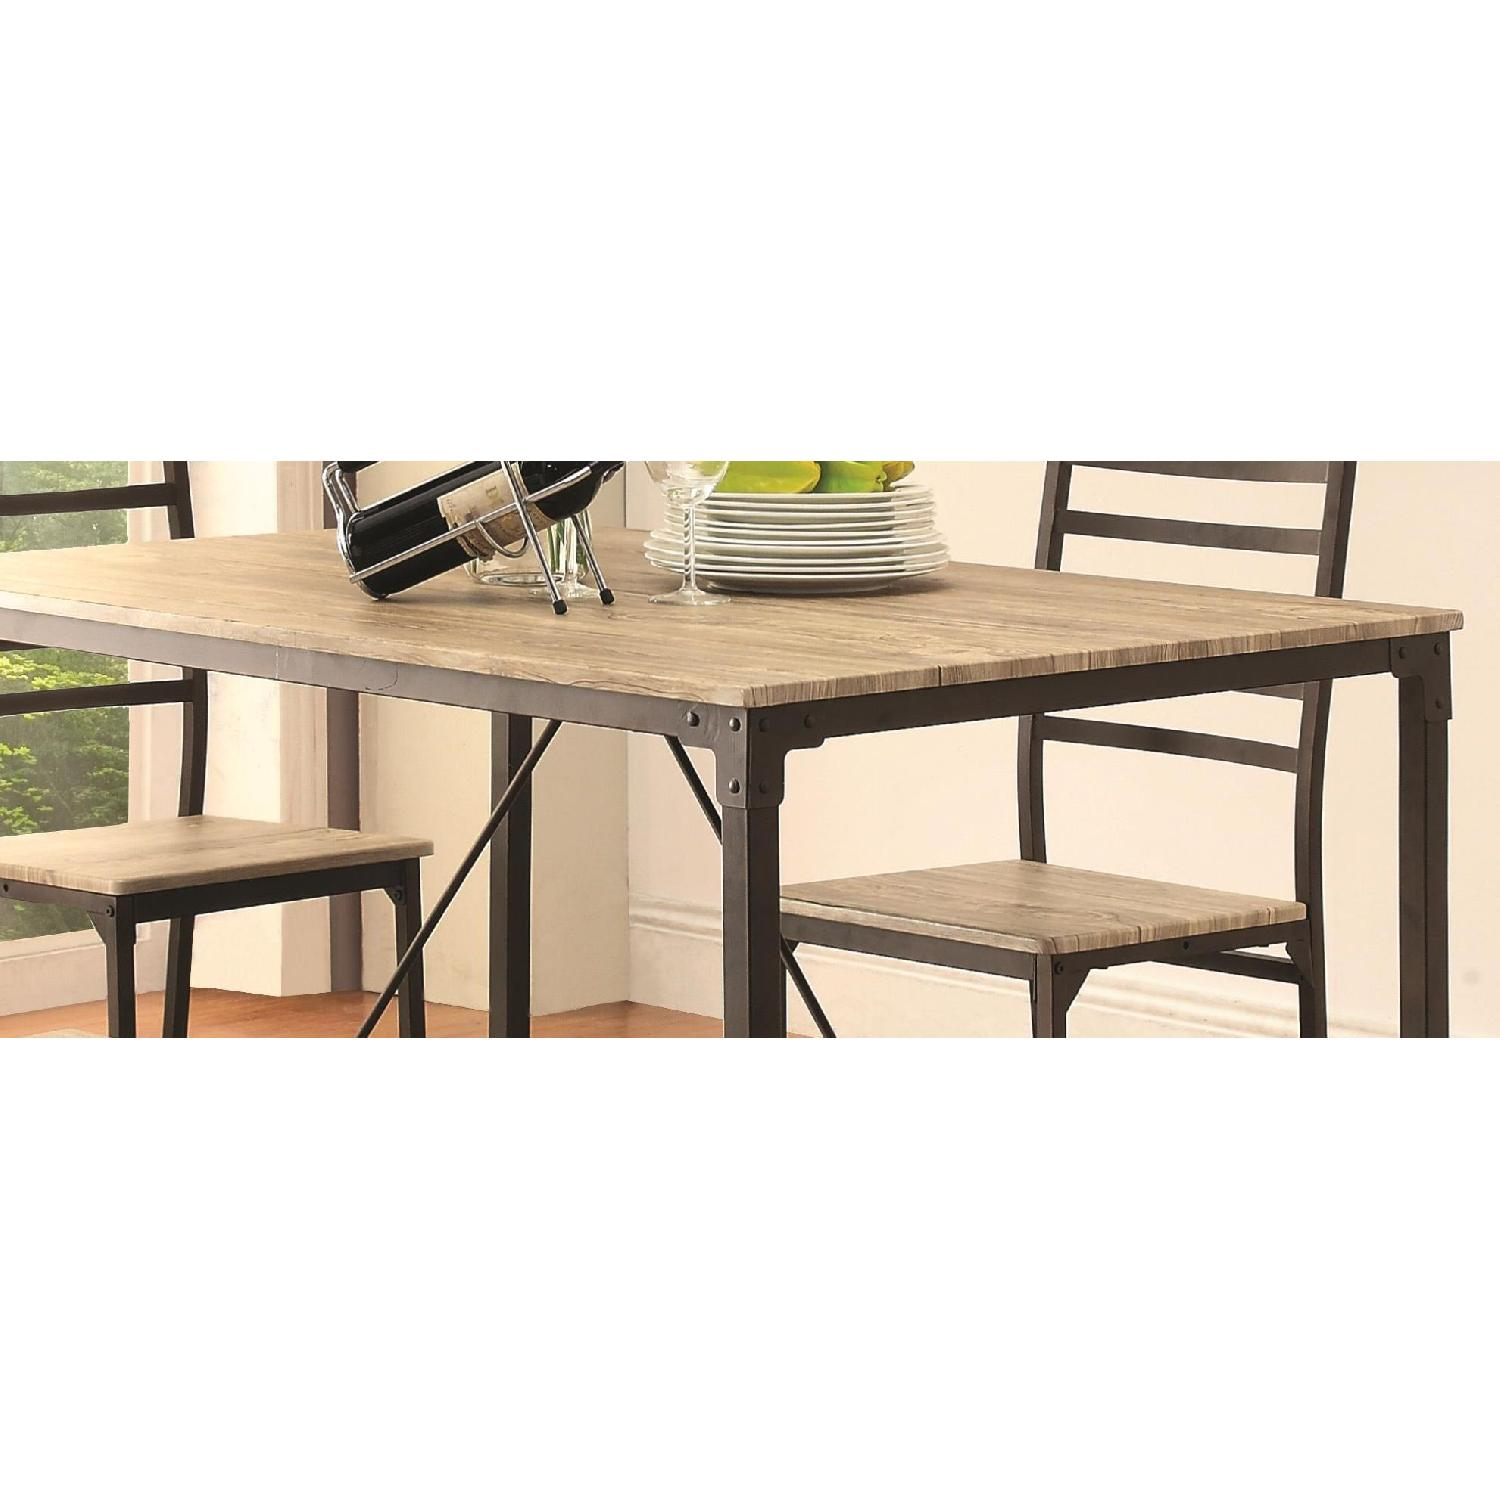 Industrial Design Inspired 5 Piece Rustic Dining Set - image-2